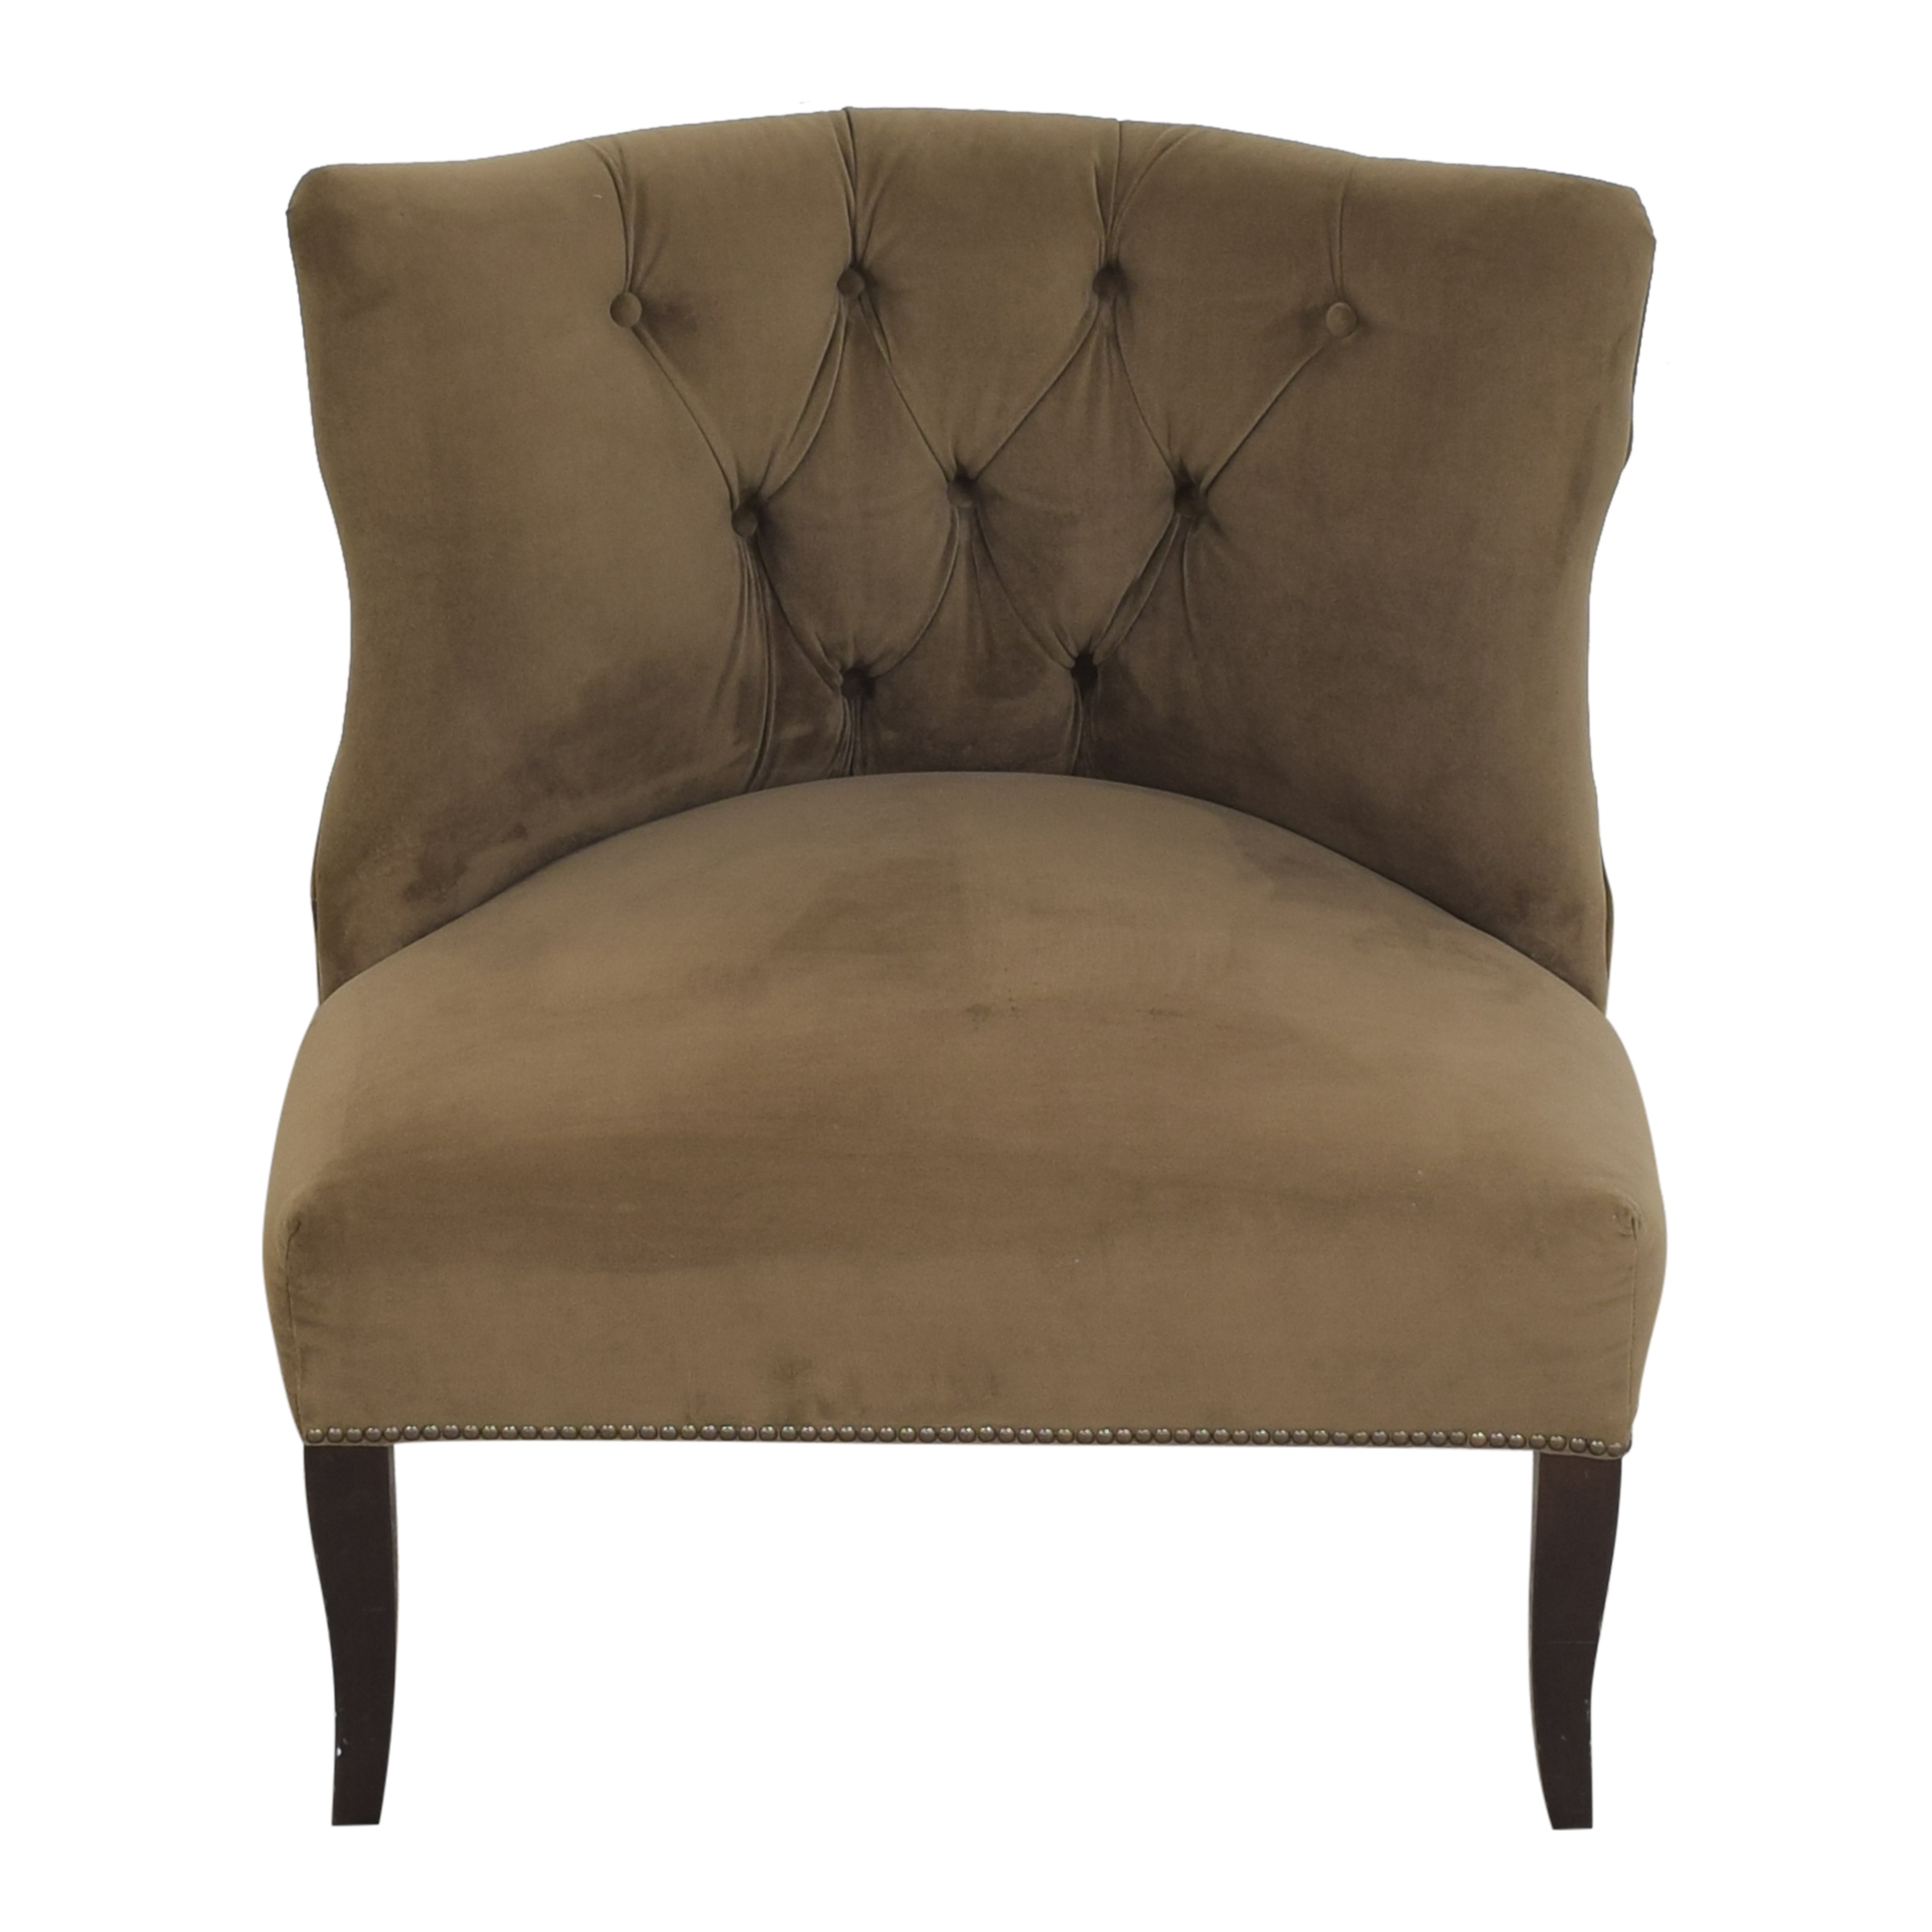 buy Patagonia Tufted Accent Chair Patagonia Accent Chairs